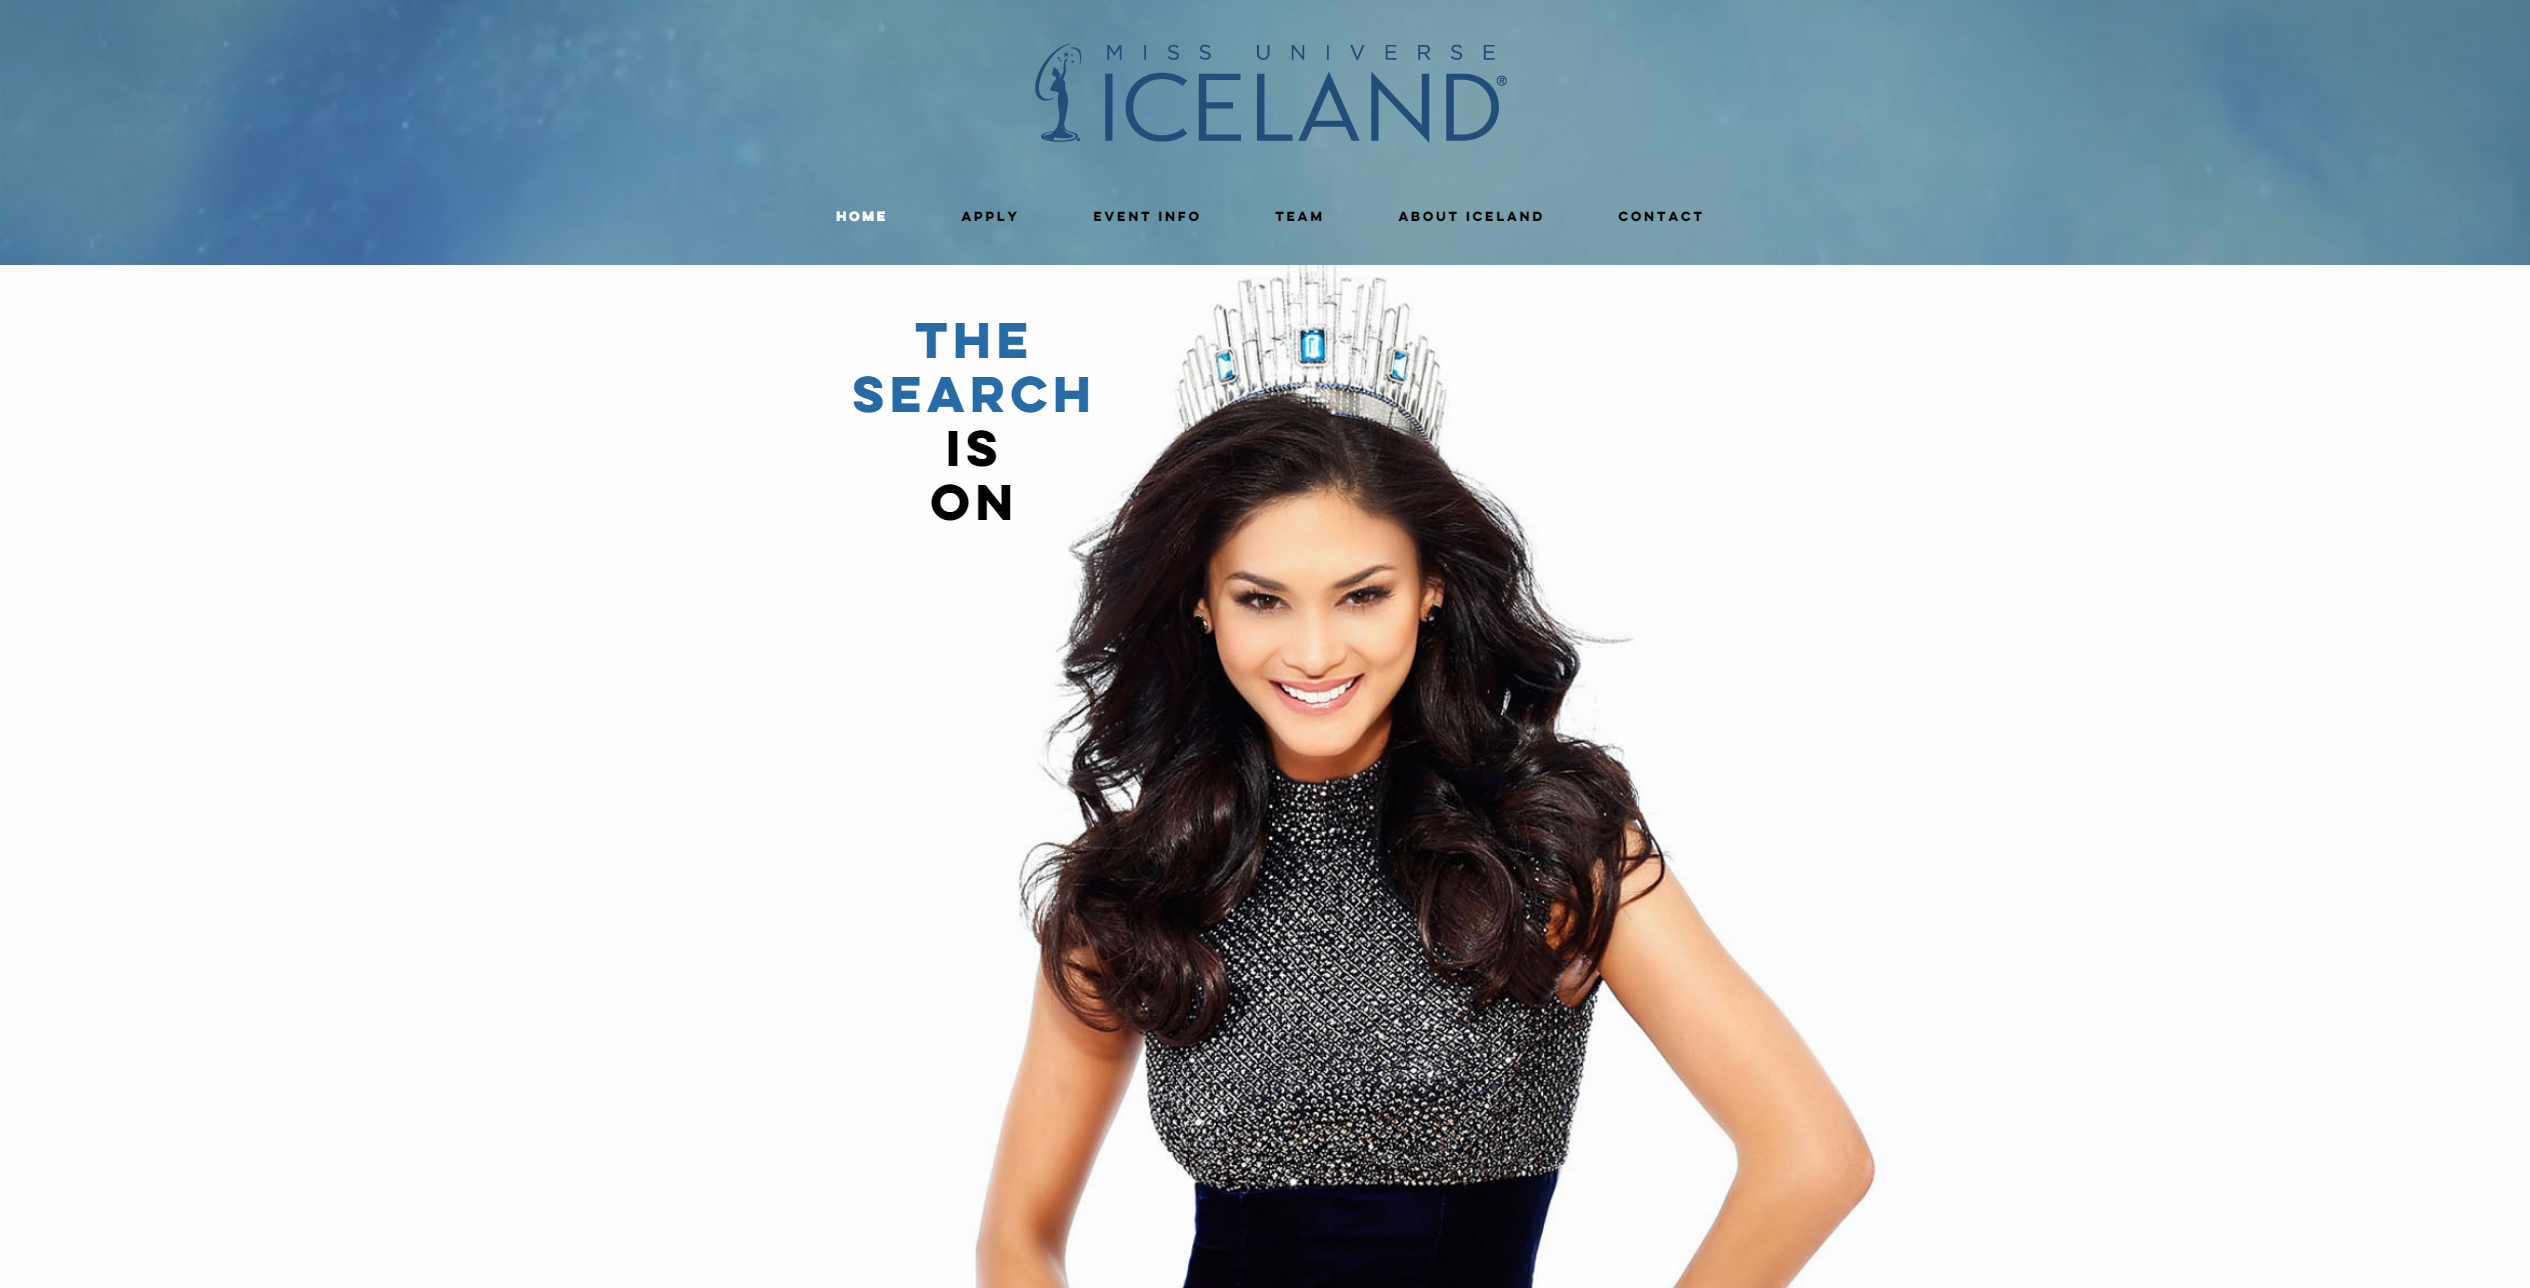 Miss Universe Iceland